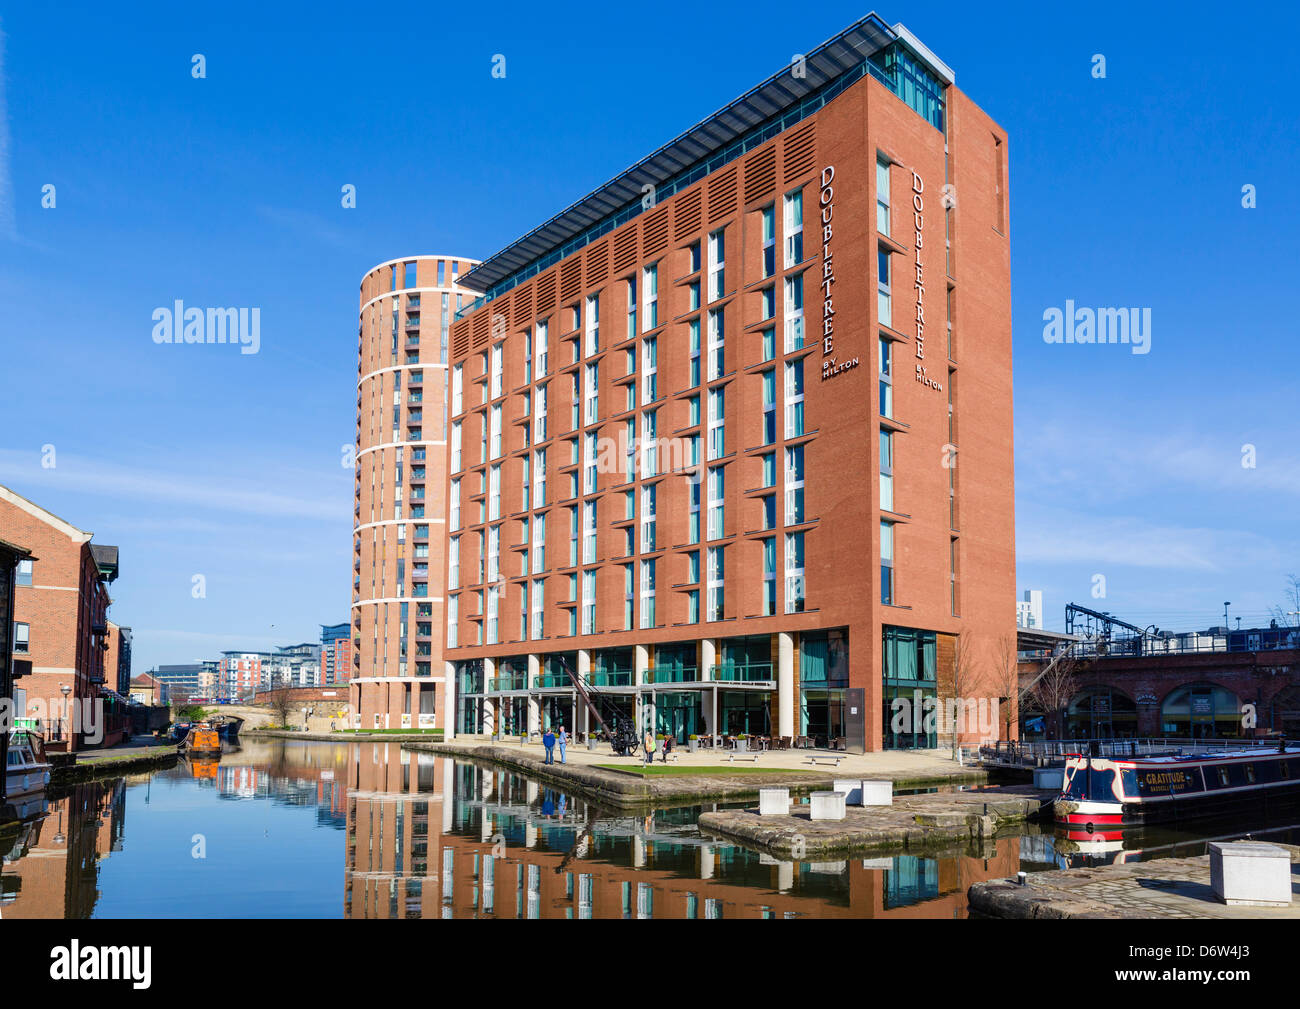 The DoubleTree Hotel by Hilton at Granary Wharf in the city centre, Leeds, West Yorkshire, UK - Stock Image